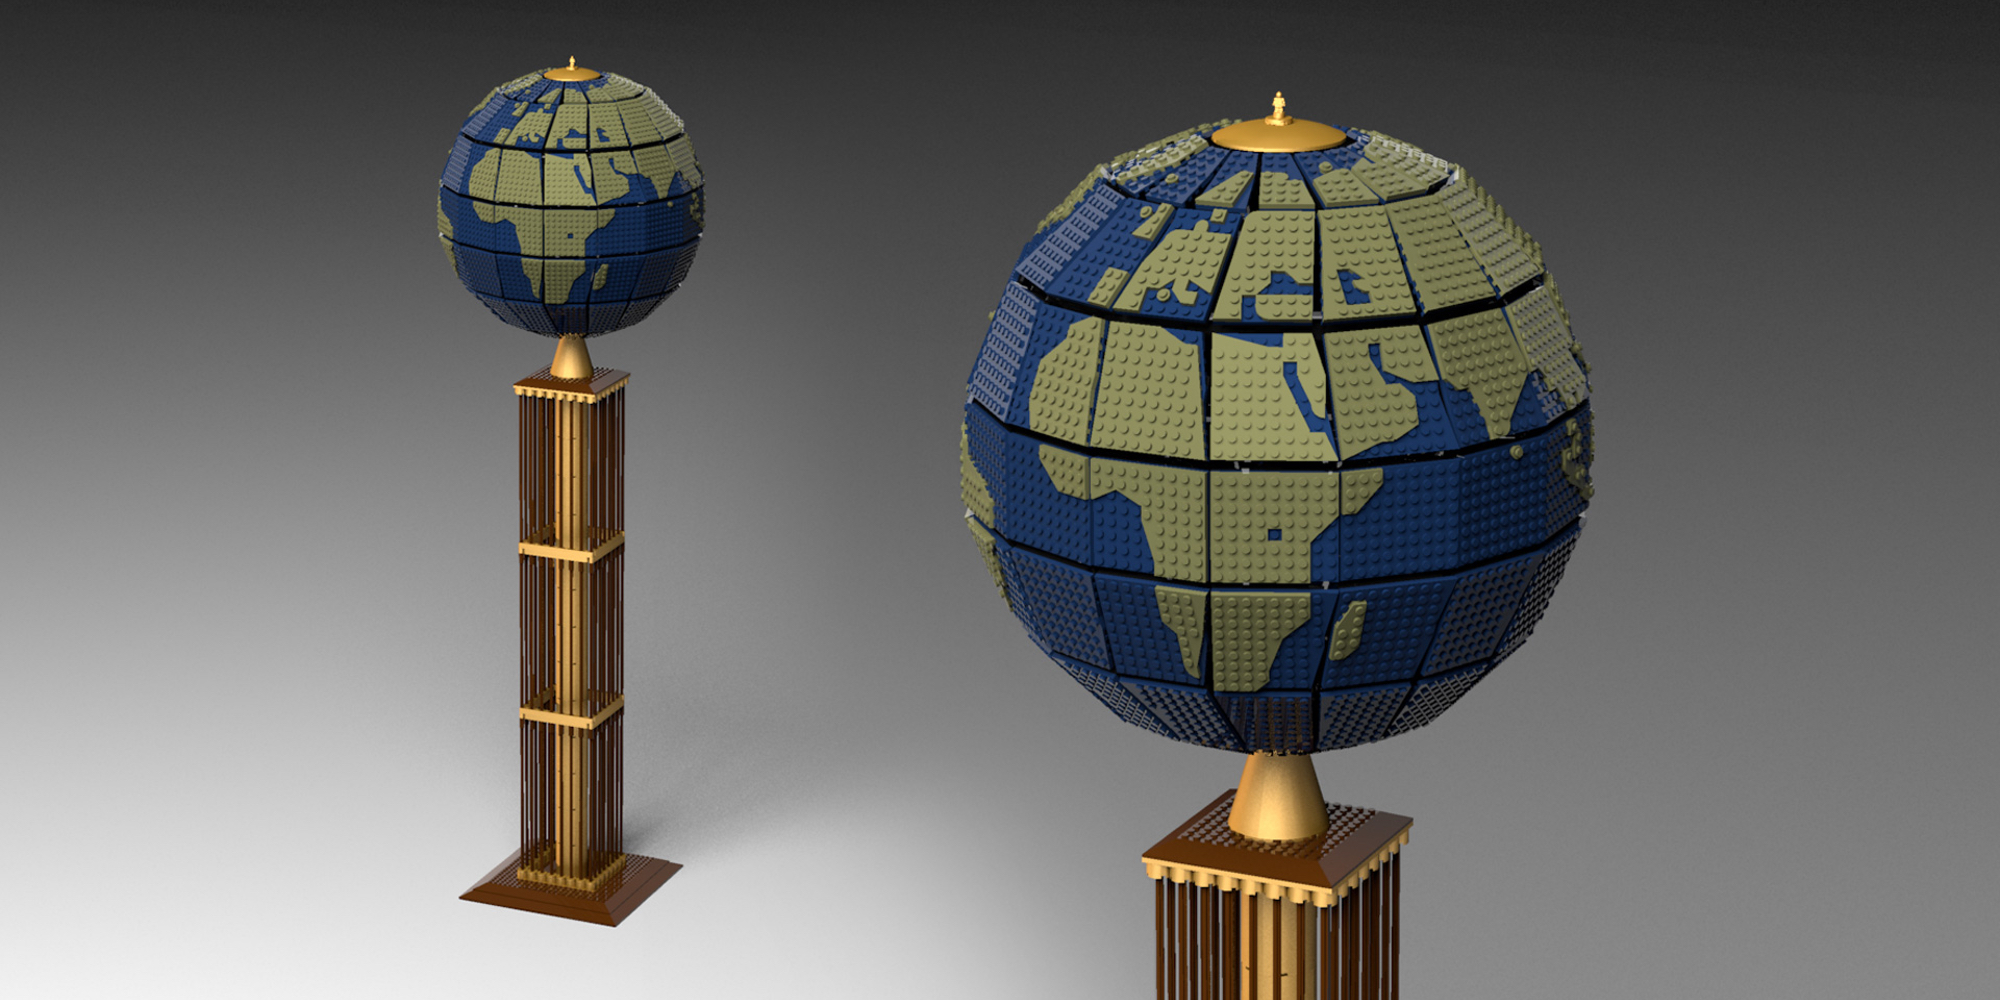 February's best LEGO Ideas creations include a brick-built globe, other found objects and more